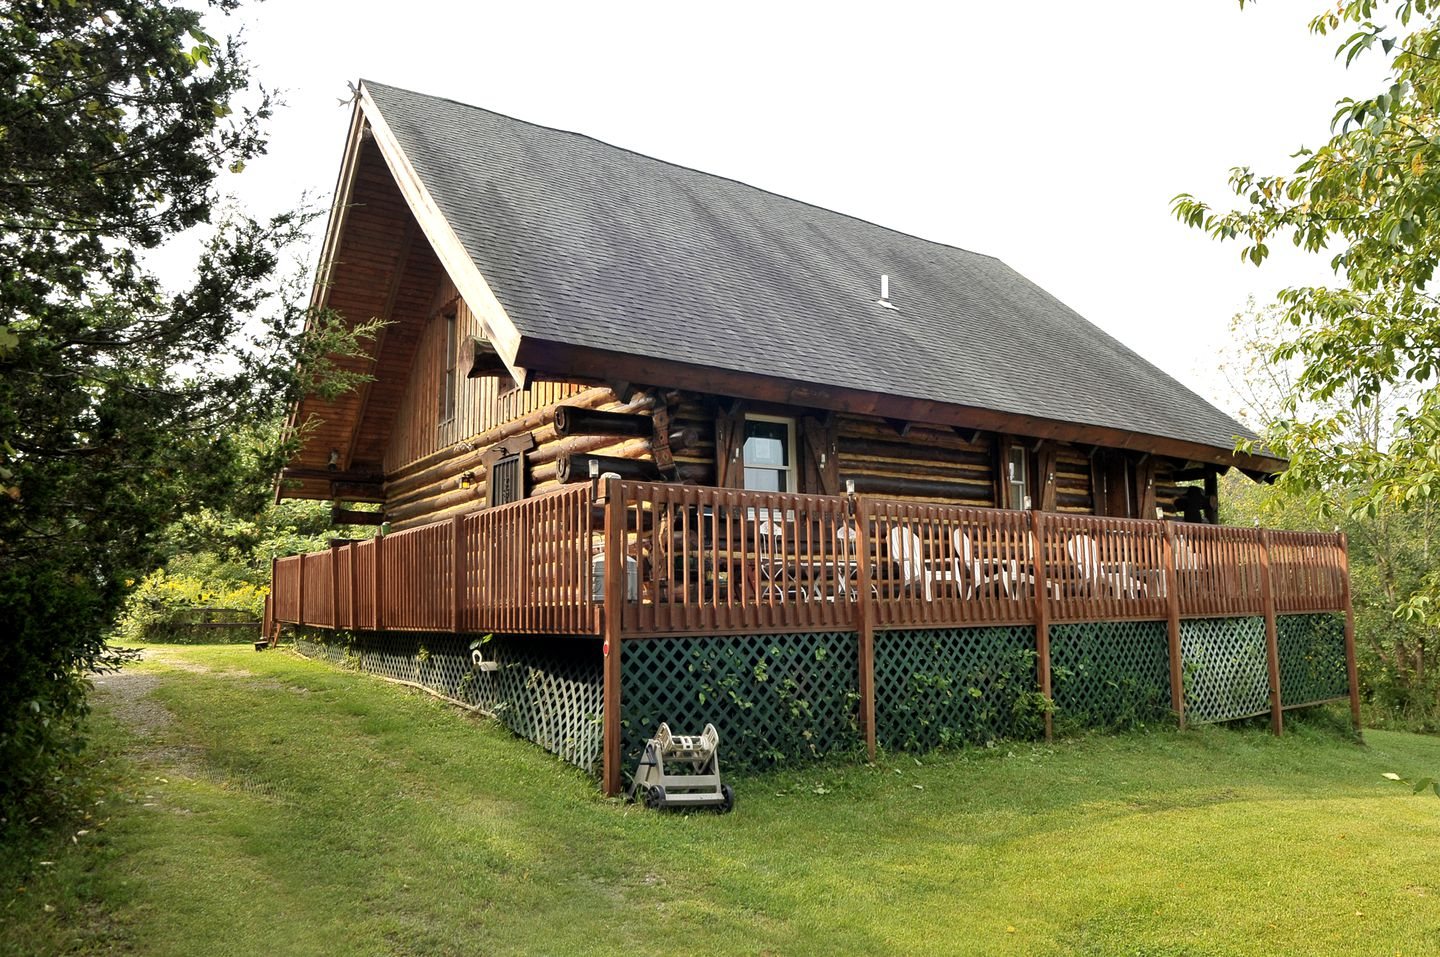 Lovely, green lawn in front of one of our luxury cabins for rent in Coloma, Michigan (USA)